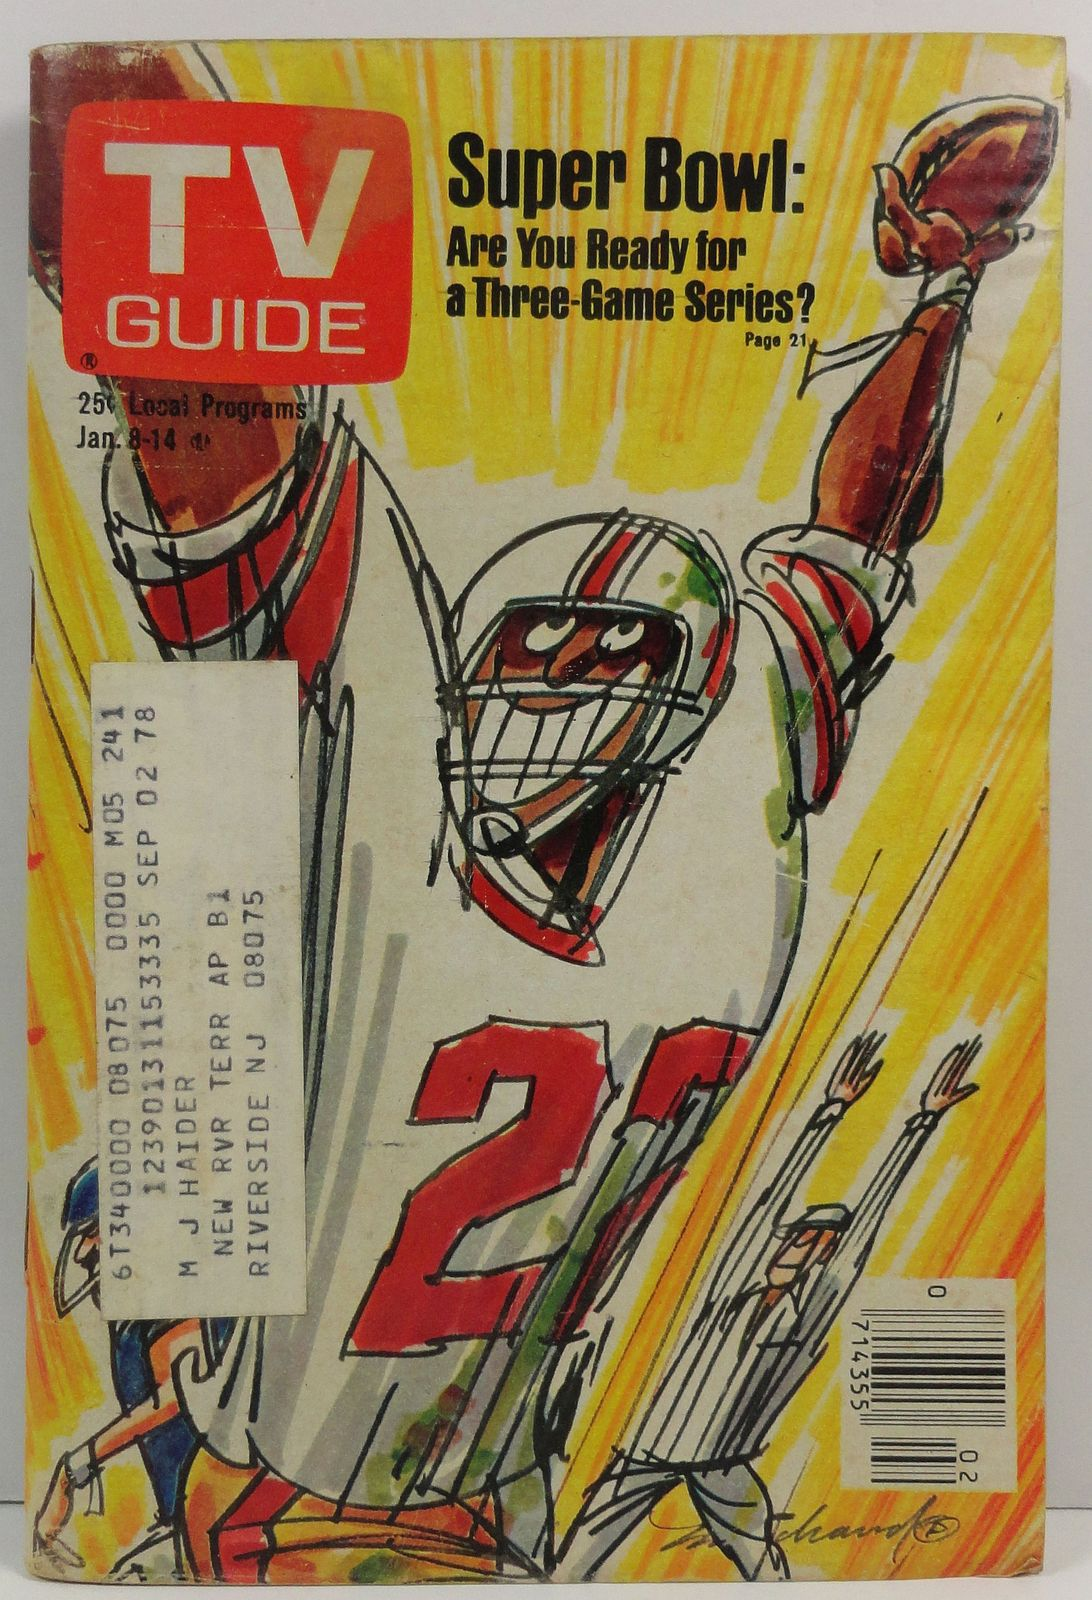 Primary image for TV Guide Magazine January 8, 1977 Superbowl Cover